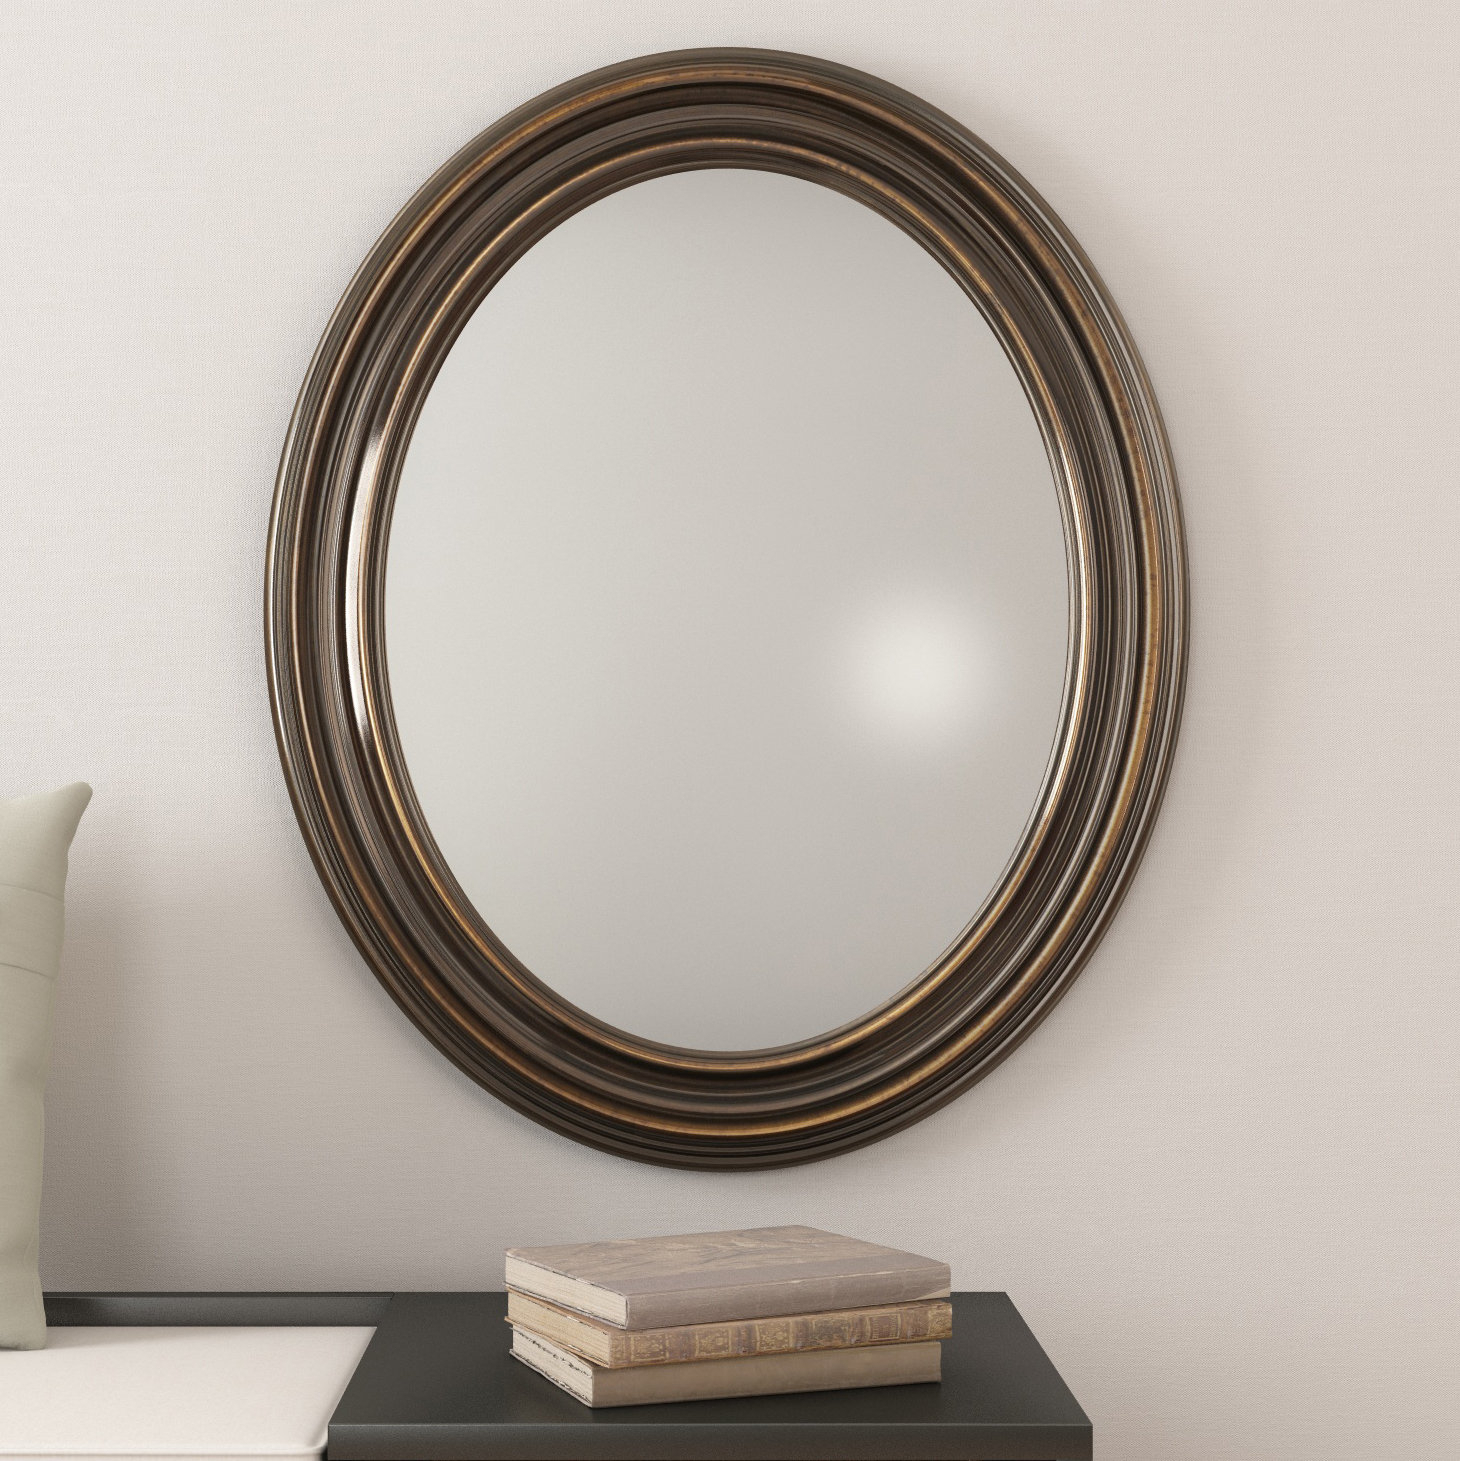 Farmhouse & Rustic Darby Home Co Wall & Accent Mirrors Inside Glen View Beaded Oval Traditional Accent Mirrors (View 10 of 20)